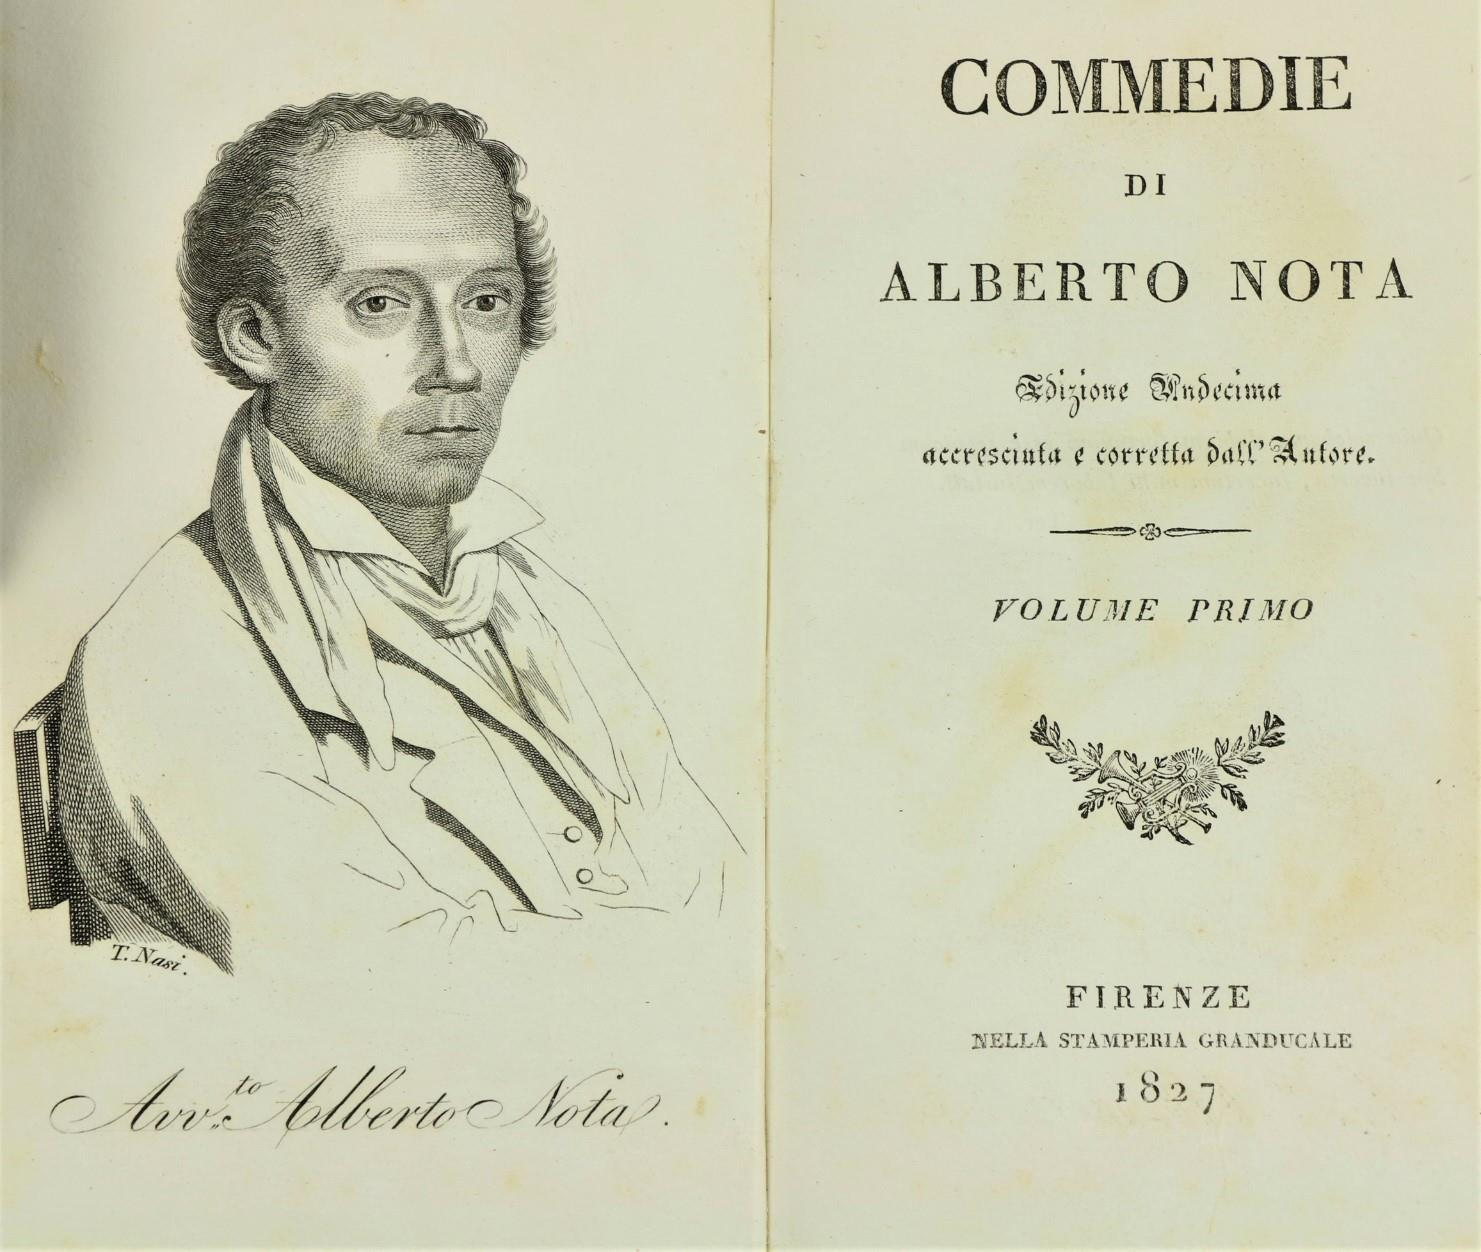 Nota (A.)ÿCommedie di Alberto Nota, 7 vols. 12mo Florence 1827. Port. frontis, cont. calf backed - Image 2 of 2